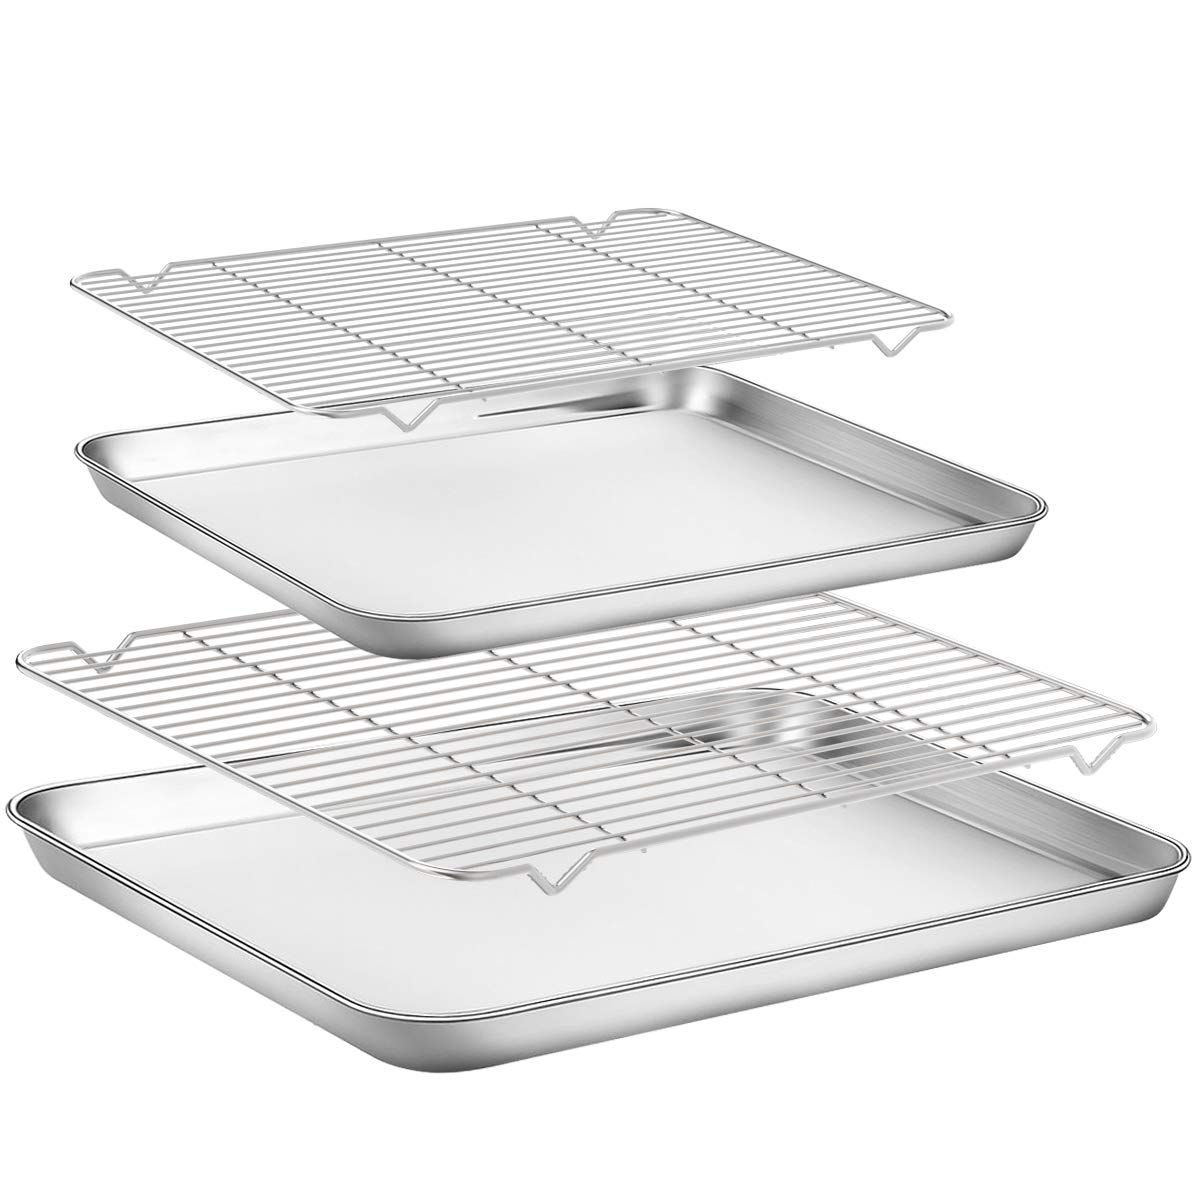 Baking Sheet With Rack Set Yododo Stainless Steel Cookie Sheet